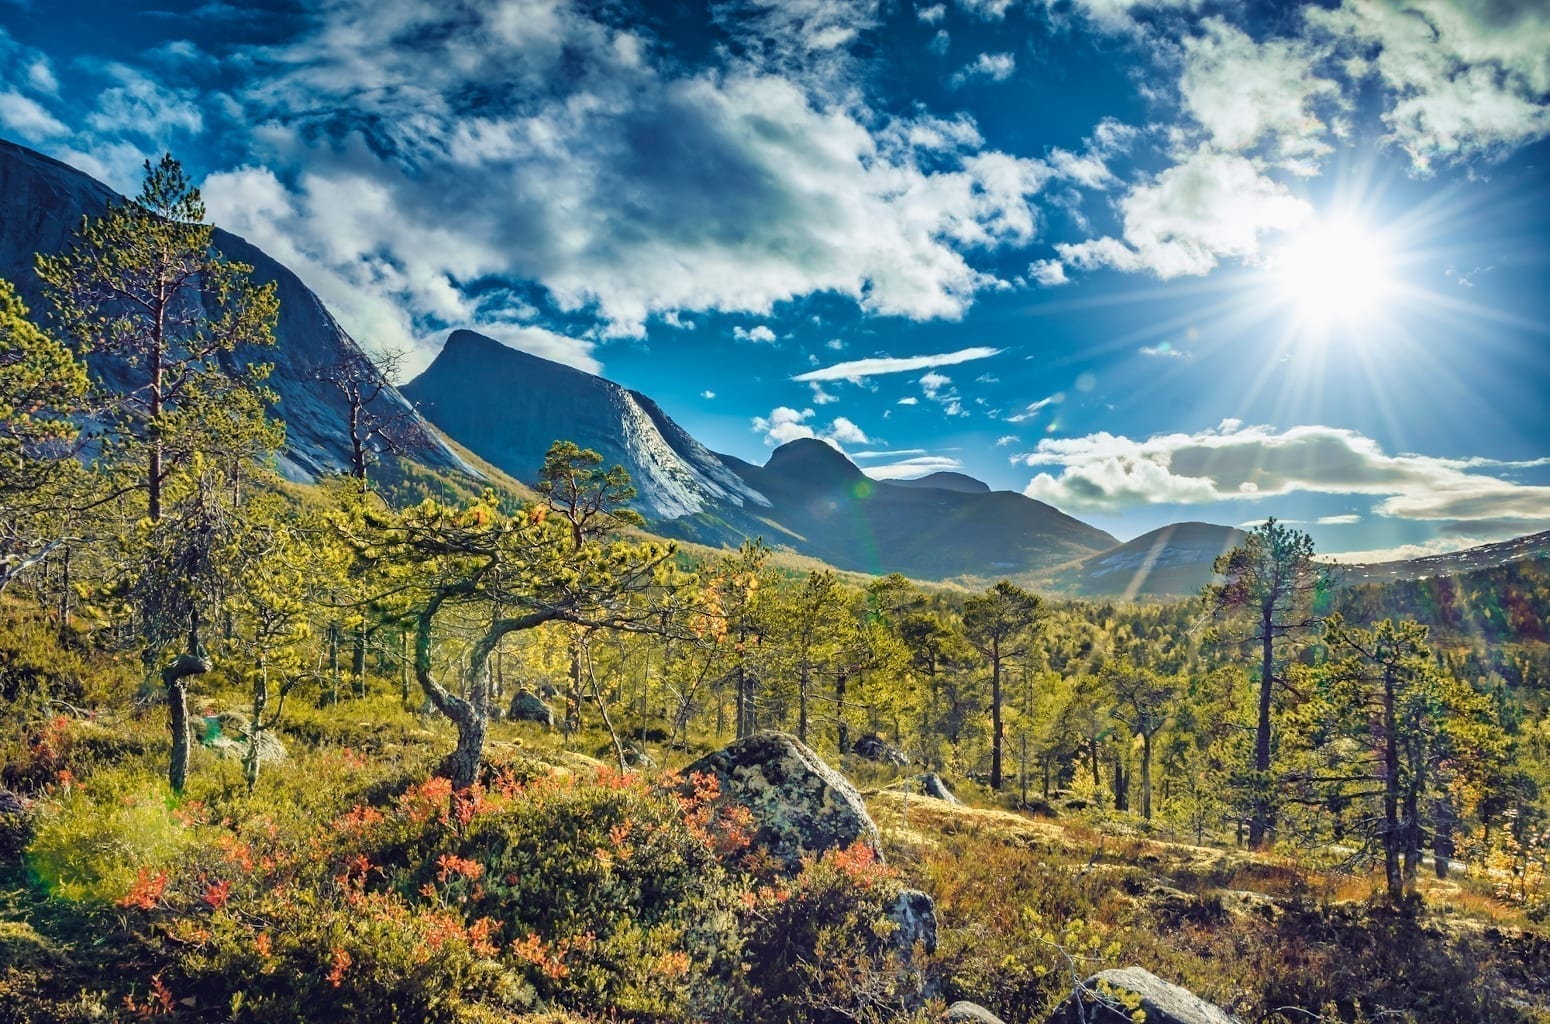 Scenic view into the Efjorddalen valley wilderness in Norway in warm autumn light with Kuglhornet summit in background.